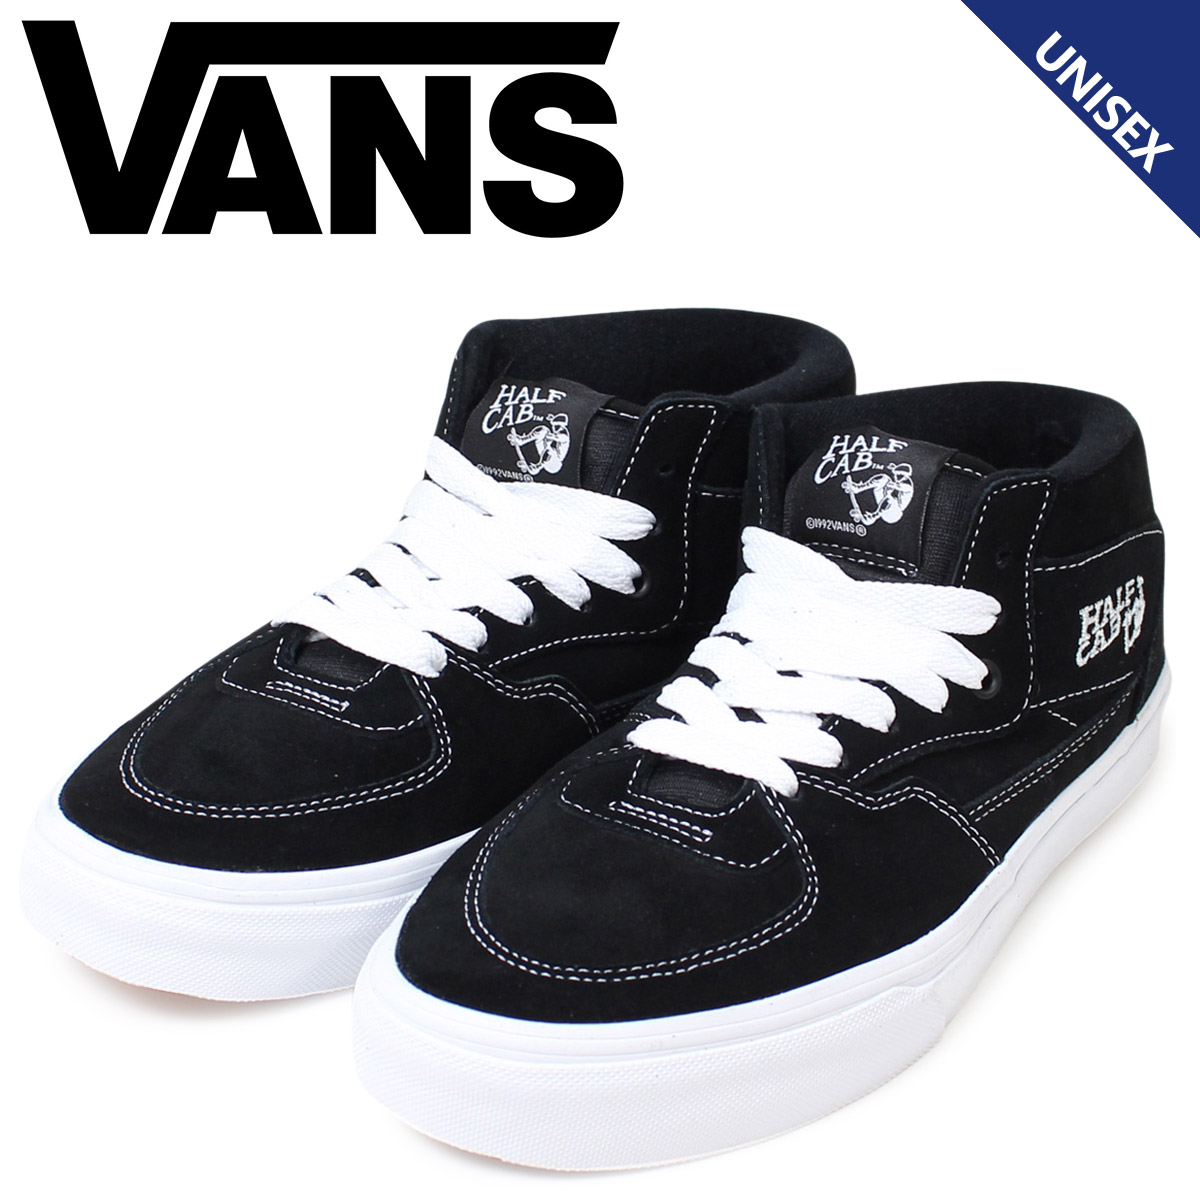 0054e7a470 VANS HALF CAB sneakers men gap Dis vans station wagons half cab VN000DZ3BLK  shoes black  the 1 13 additional arrival